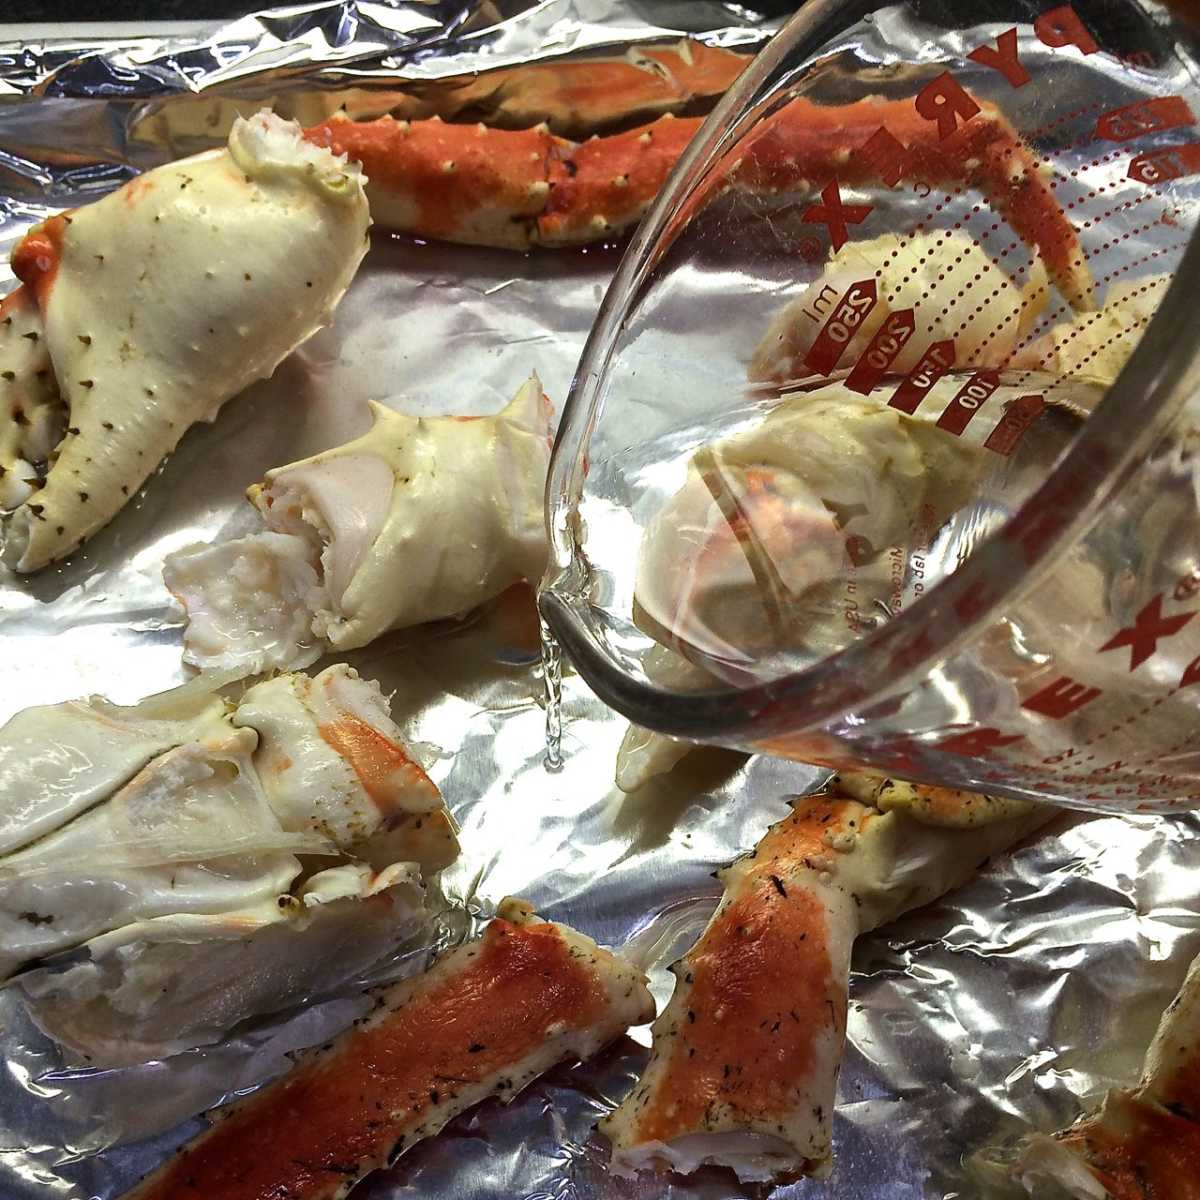 King Crab Legs with Drawn Butter